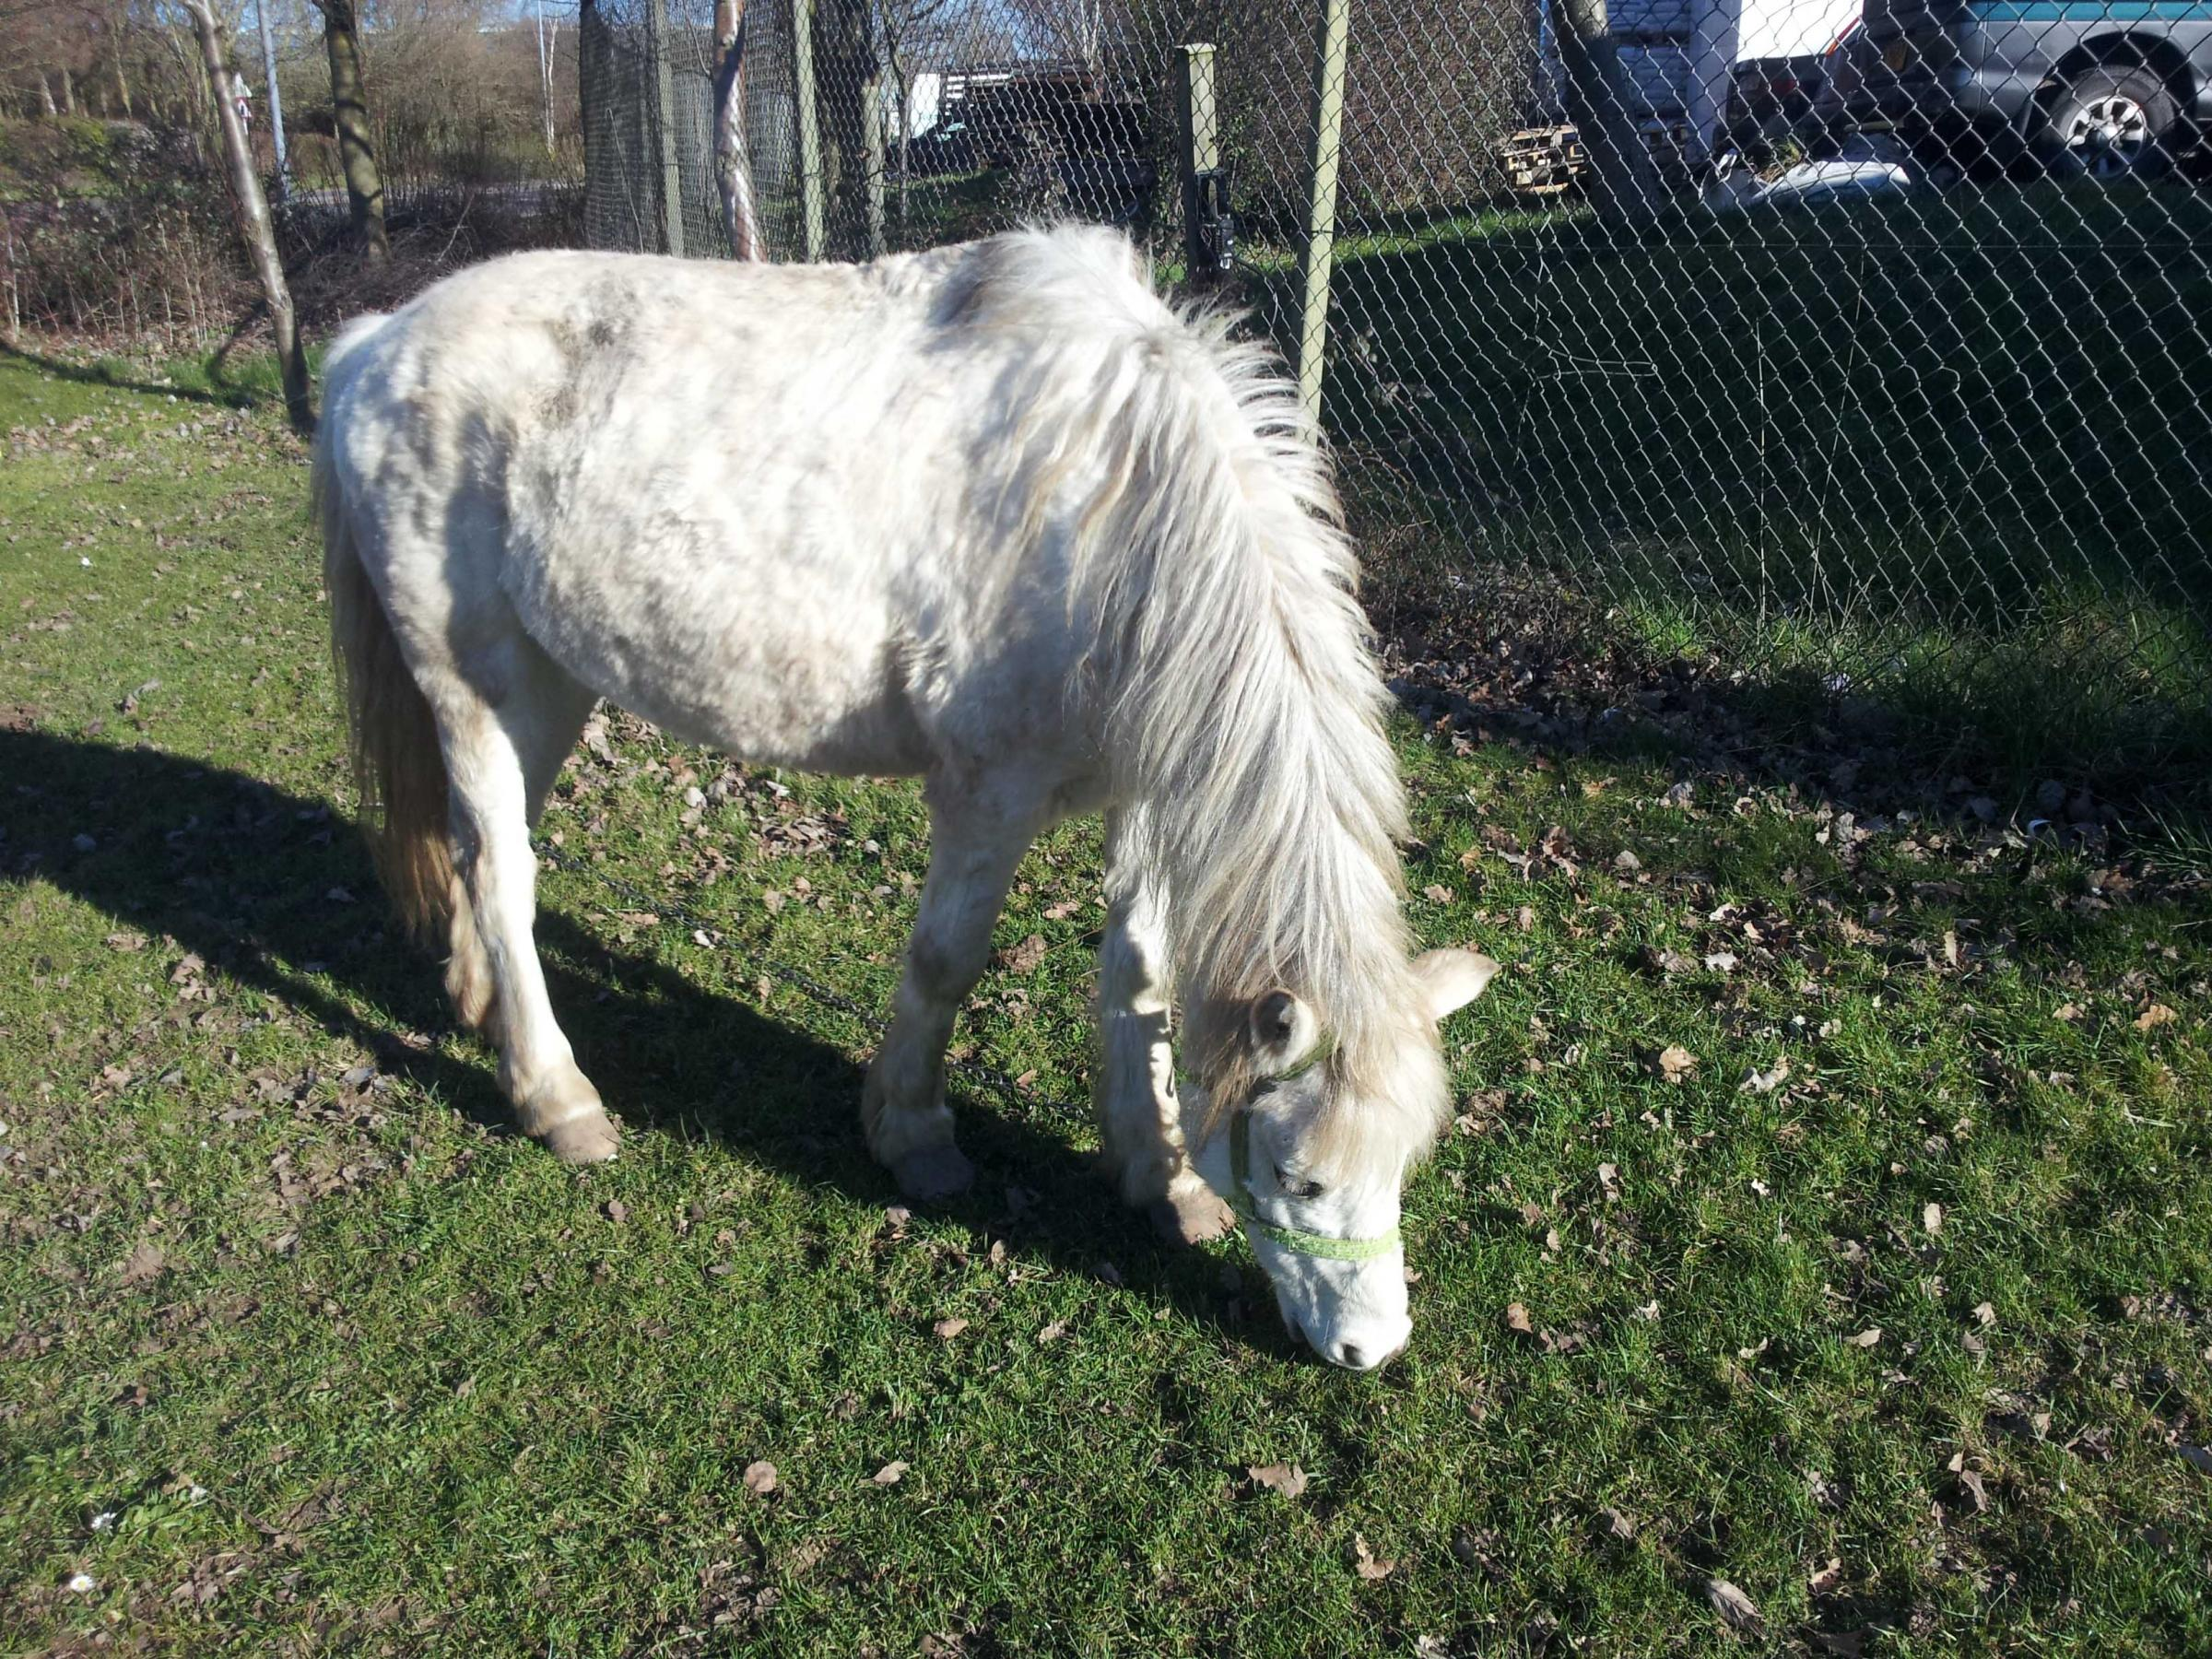 One of two horses spotted near the roundabout in Wainwright Road in Worcester on Sunday